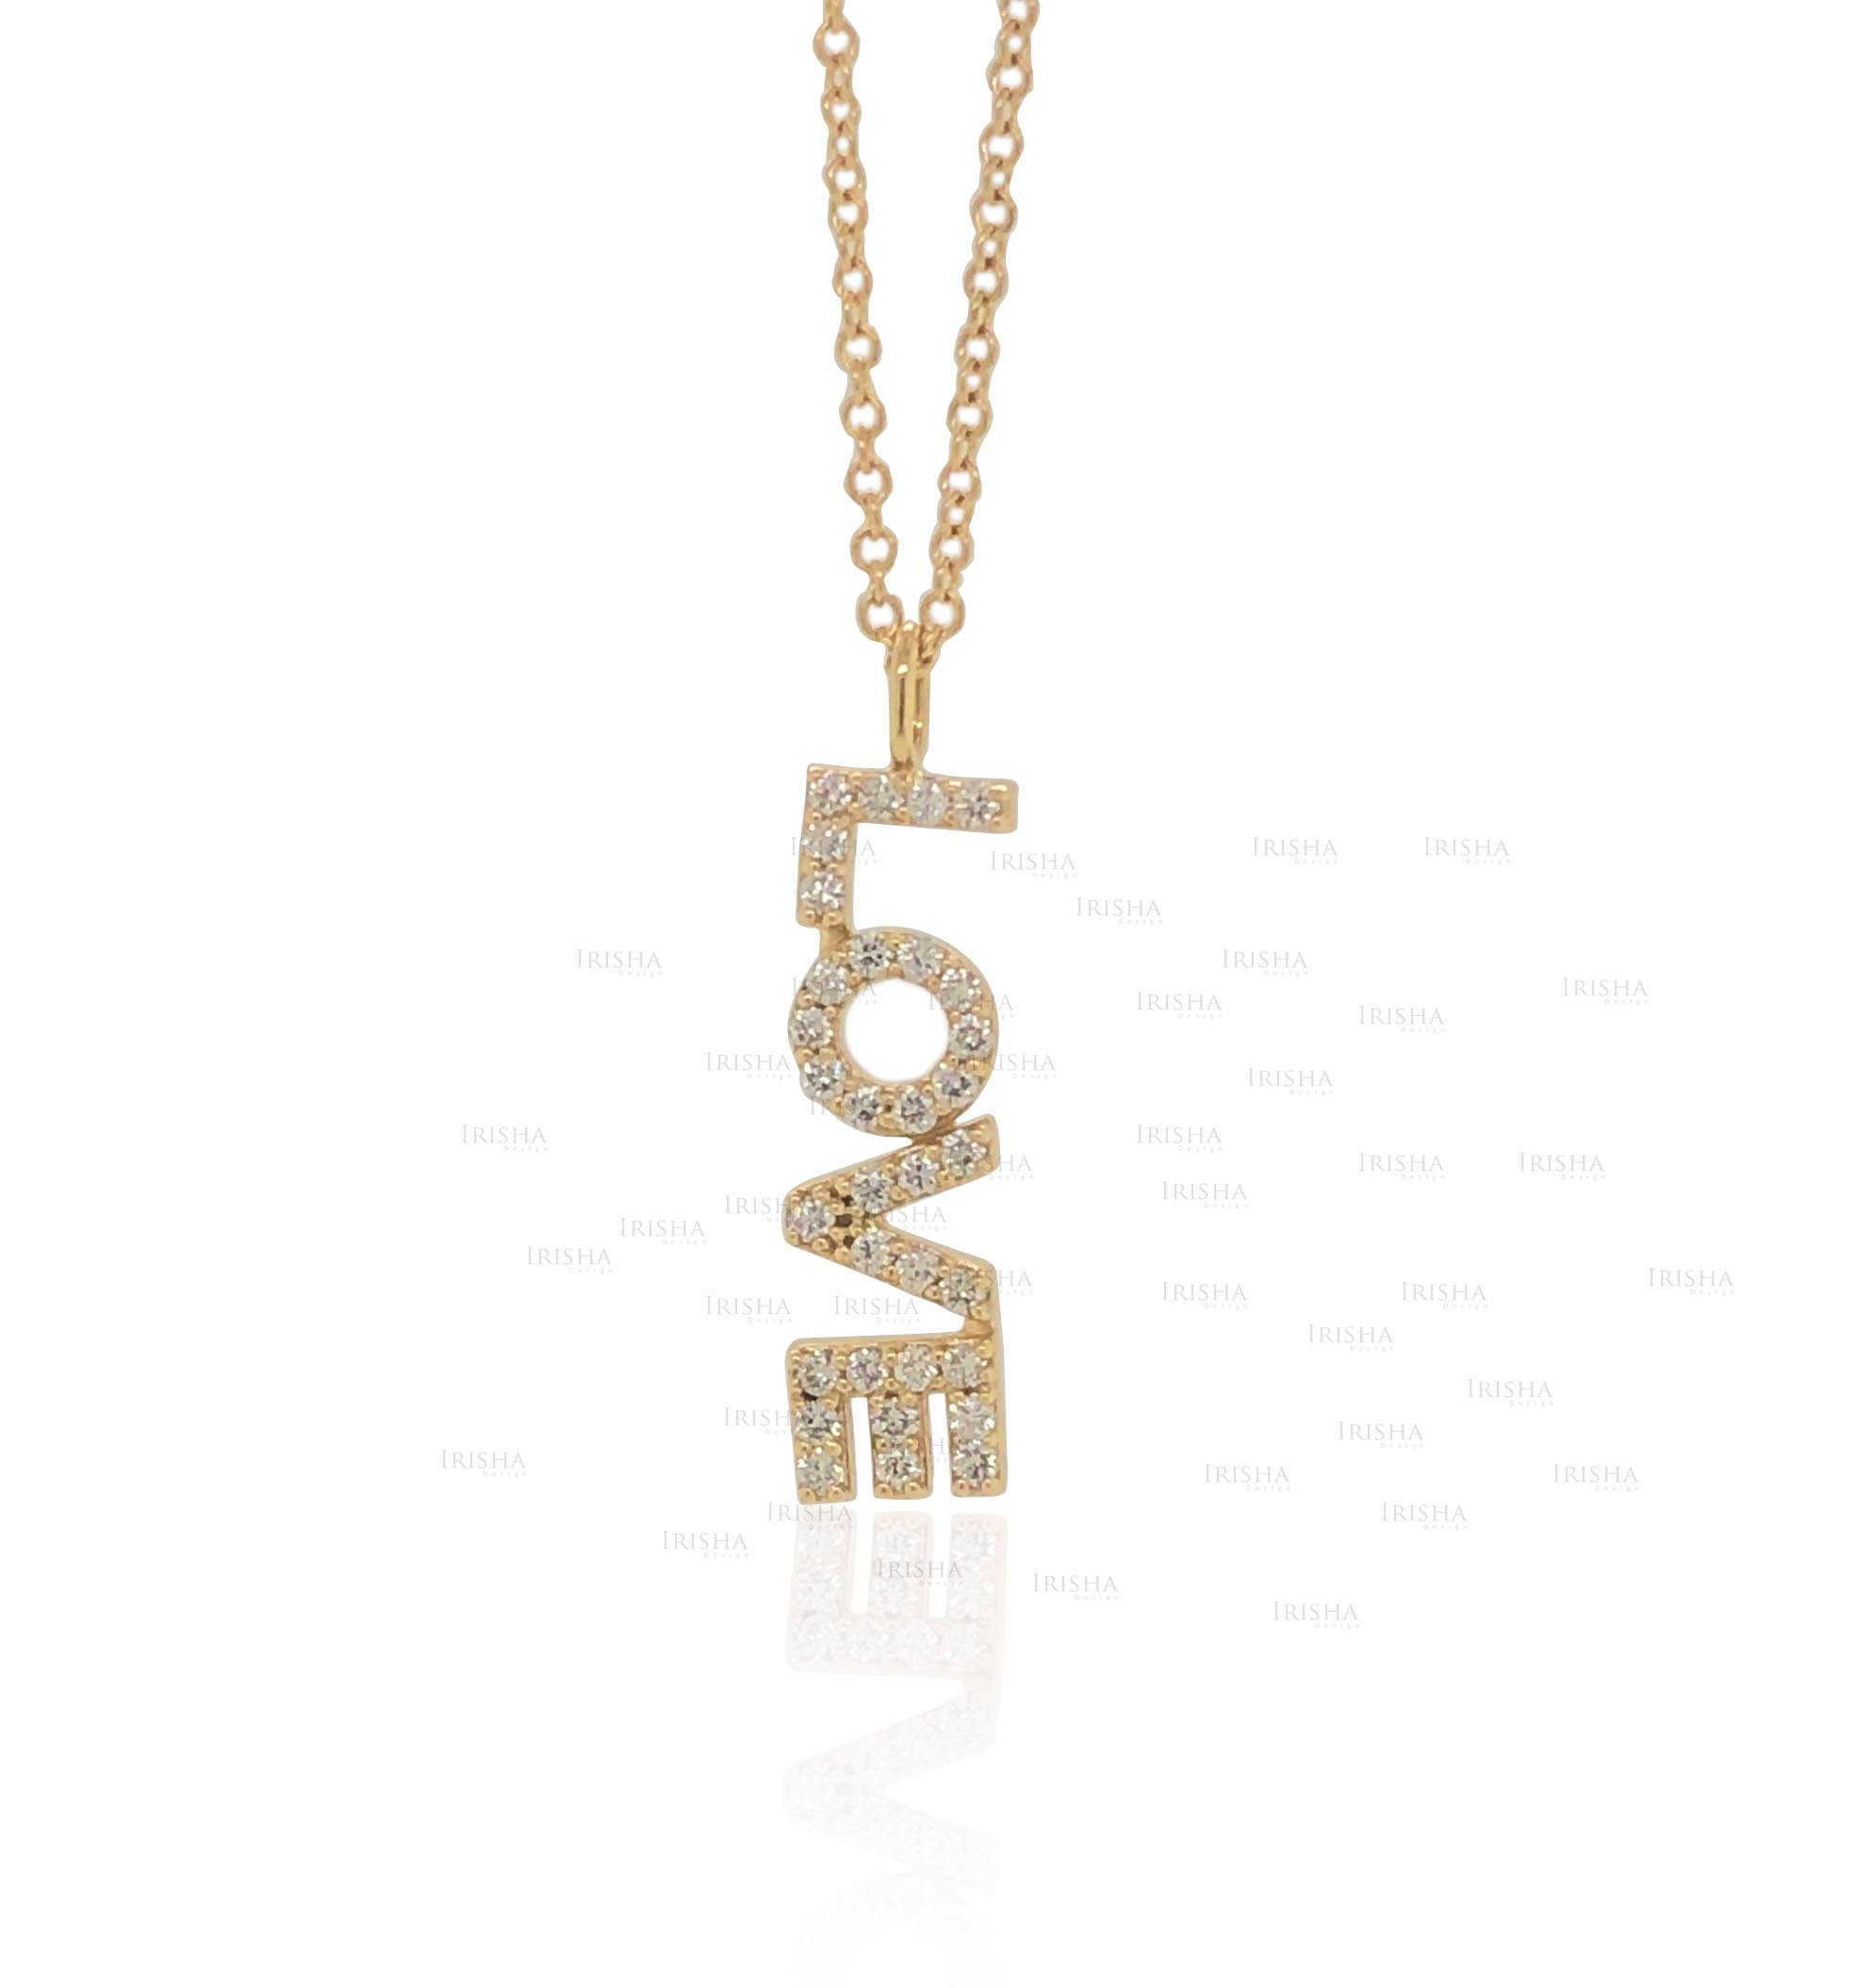 Love Necklace Gift 0.15 Ct. Genuine Diamond 18K Gold